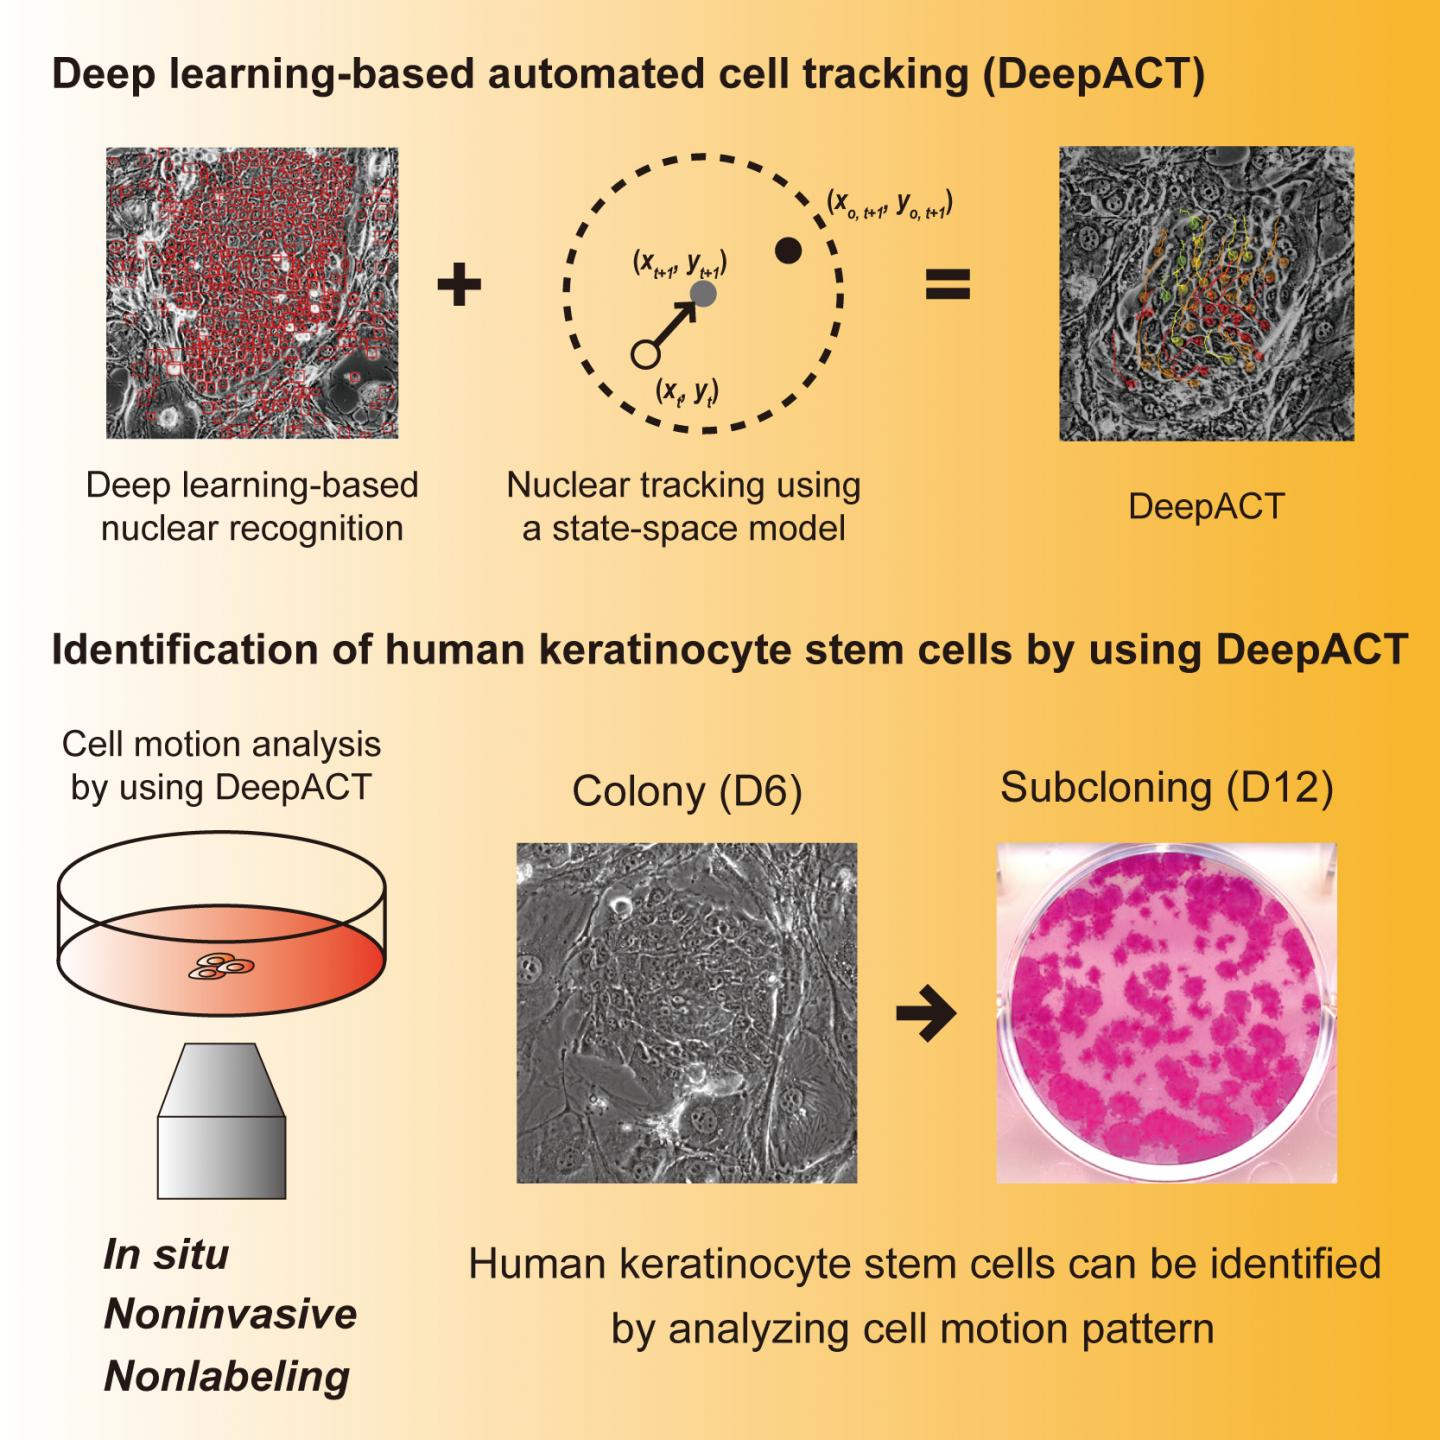 Deep learning-based automated cell tracking (DeepACT) for identification of human keratinocyte stem cells.